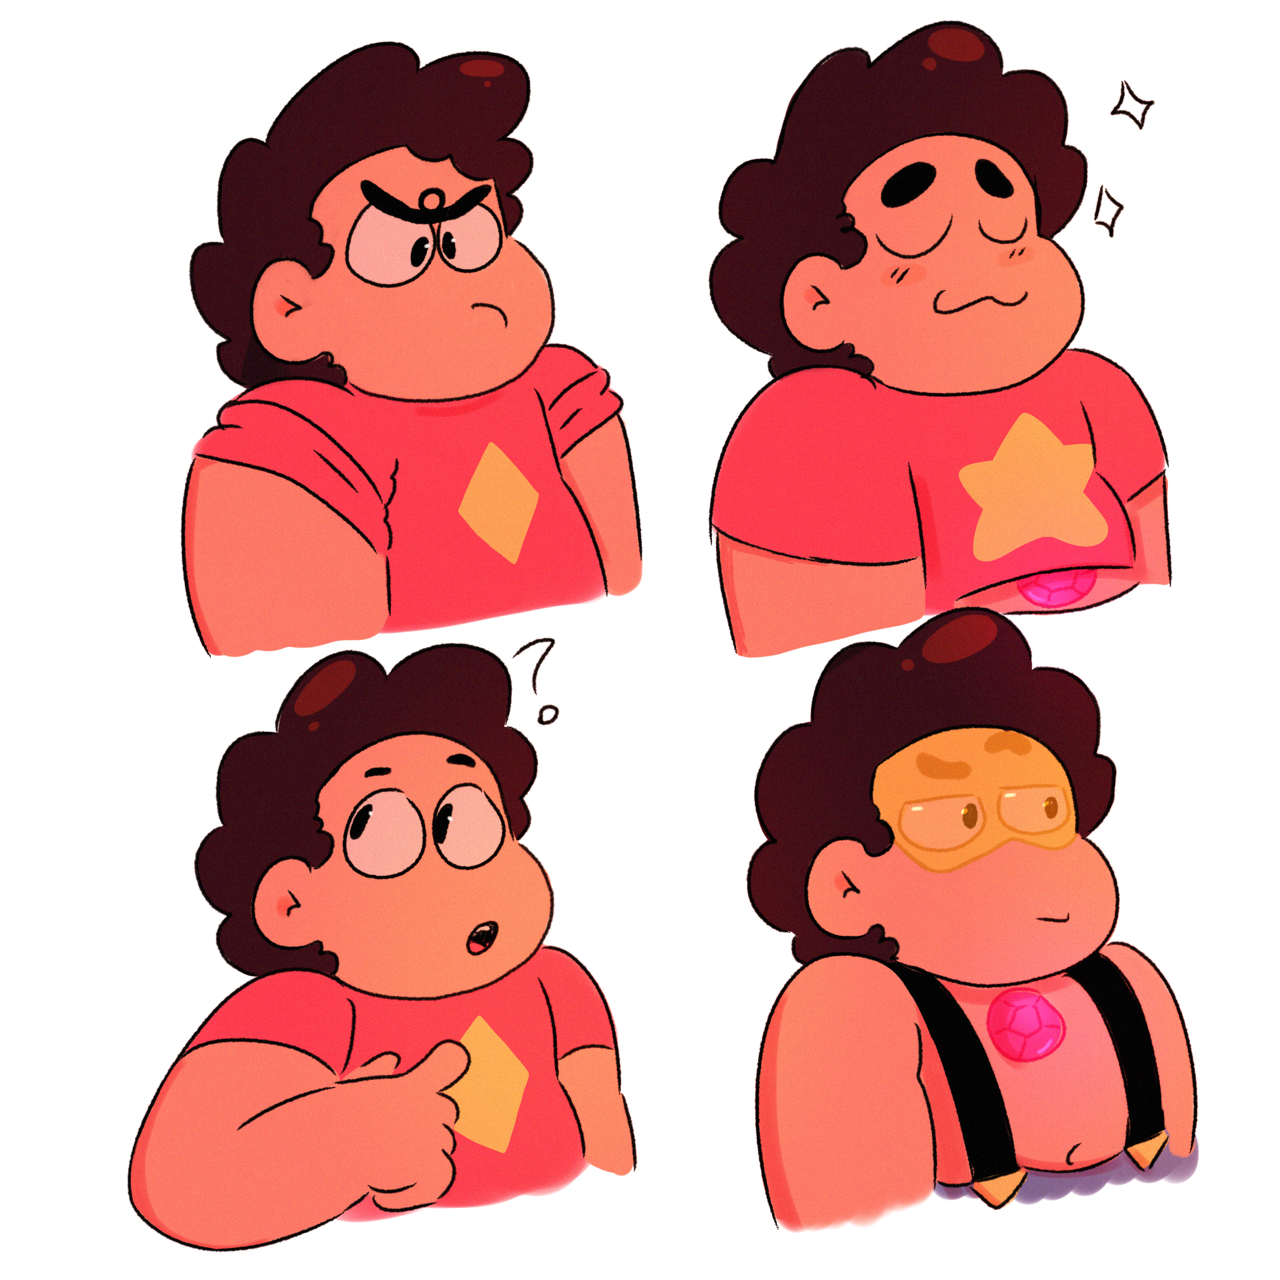 Multiple Stevens with the personality of the rubies. (Couldn't fit an eyeball Steven in)